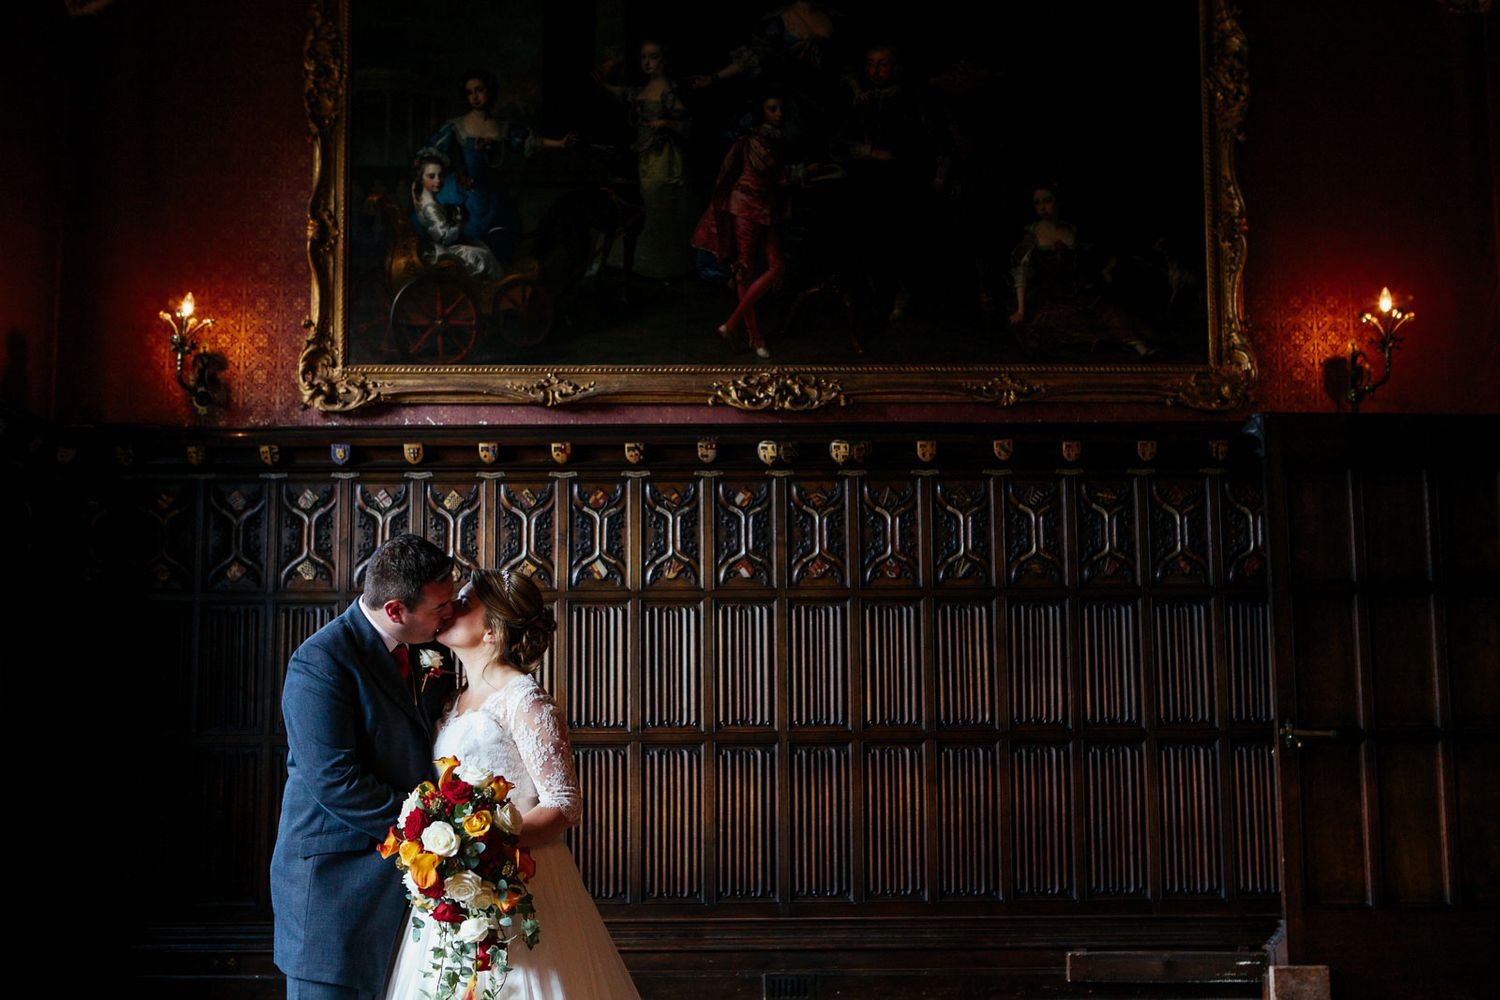 classic and traditional wedding photography at Powderham Castle Devon